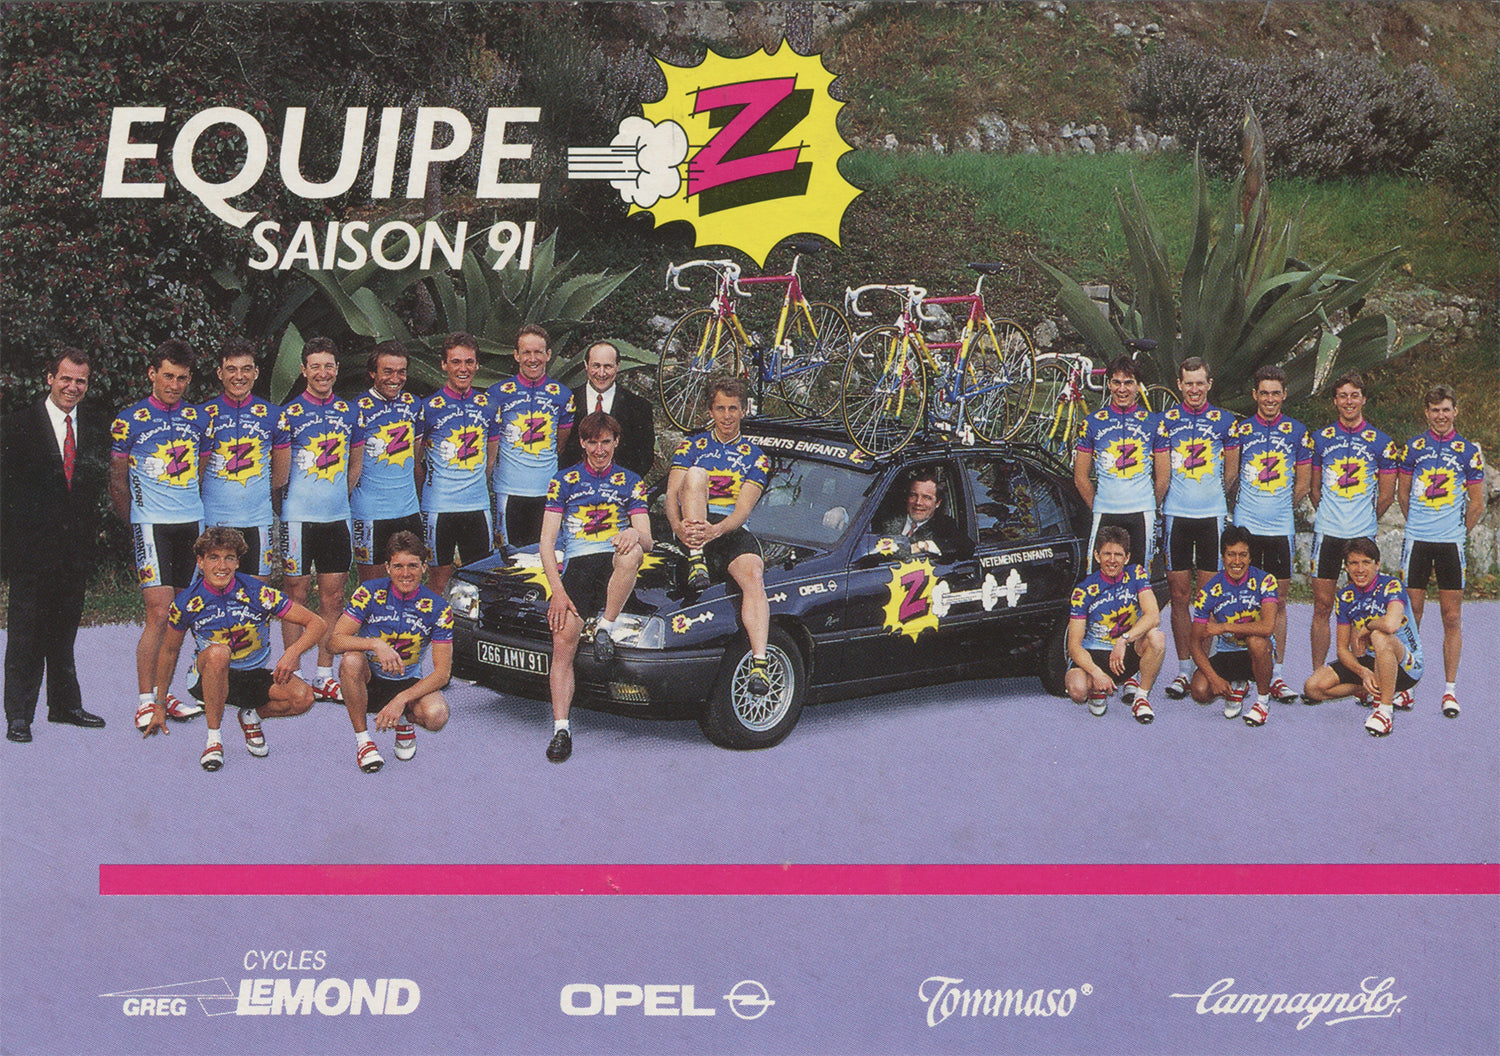 Vêtements Z-Peugeot Cycling Team postcard from 1991